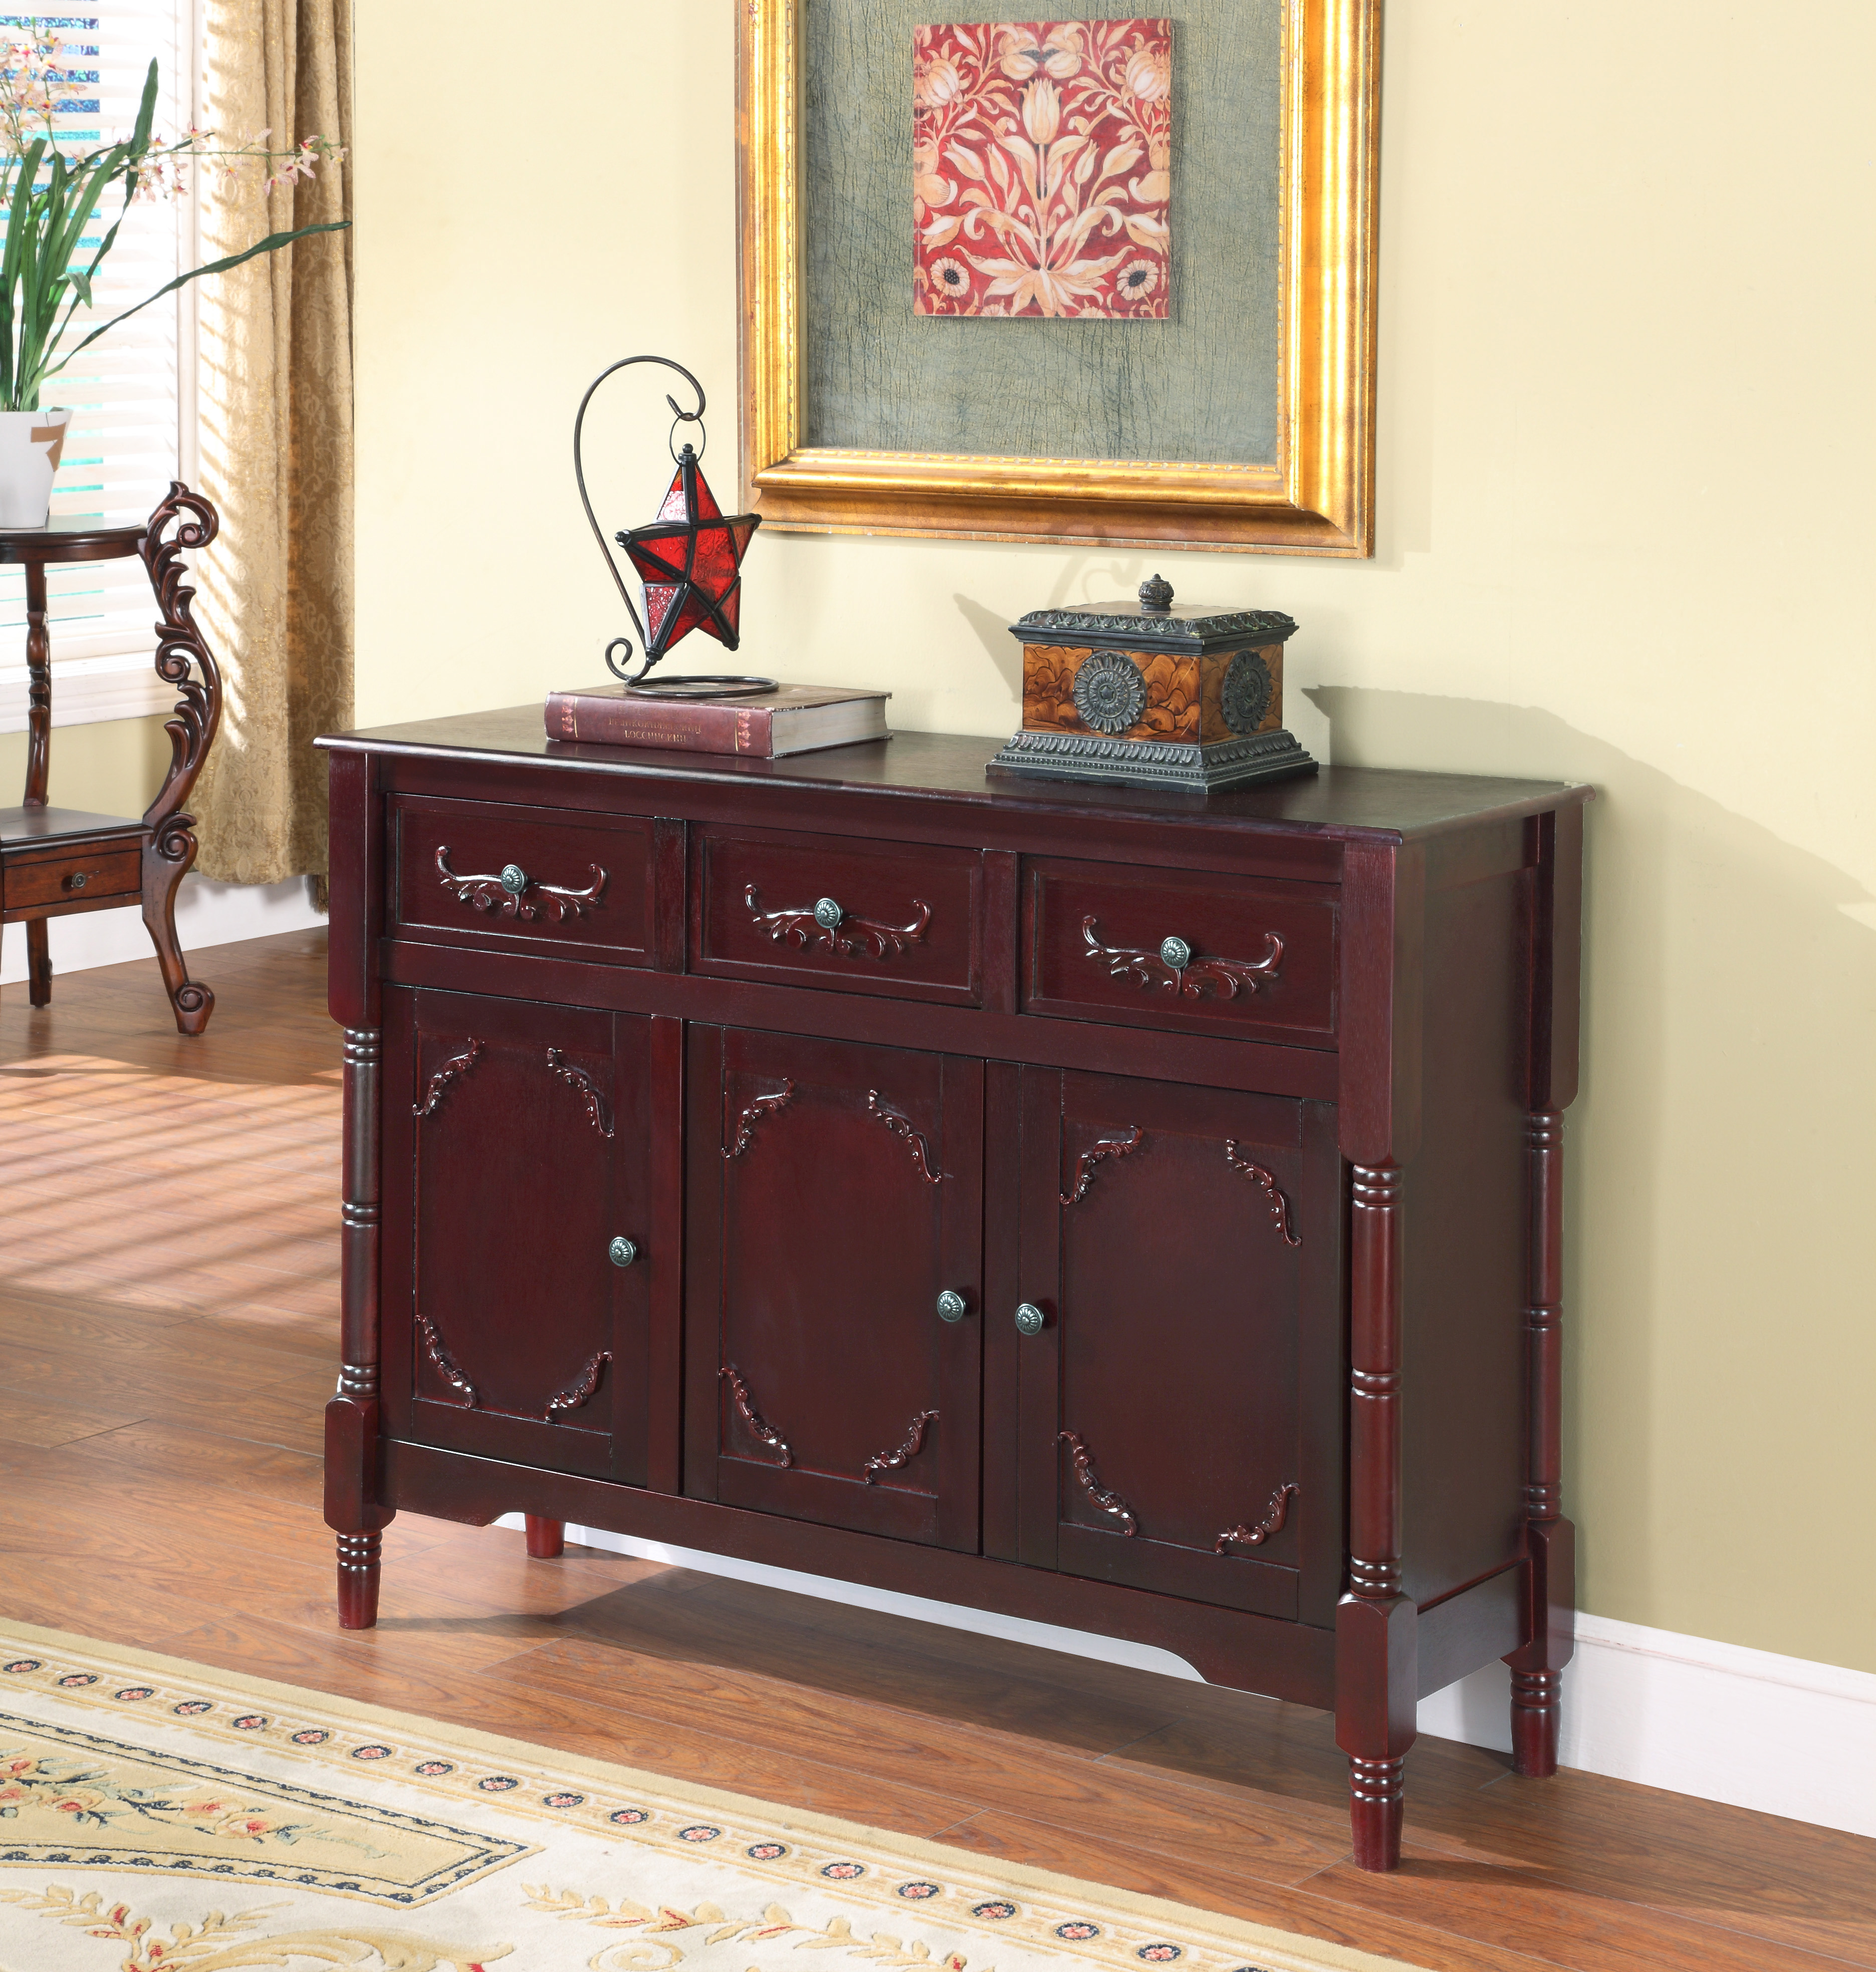 Black Wood Contemporary Sideboard Buffet Display Console Table With Storage  Drawers U0026 Doors